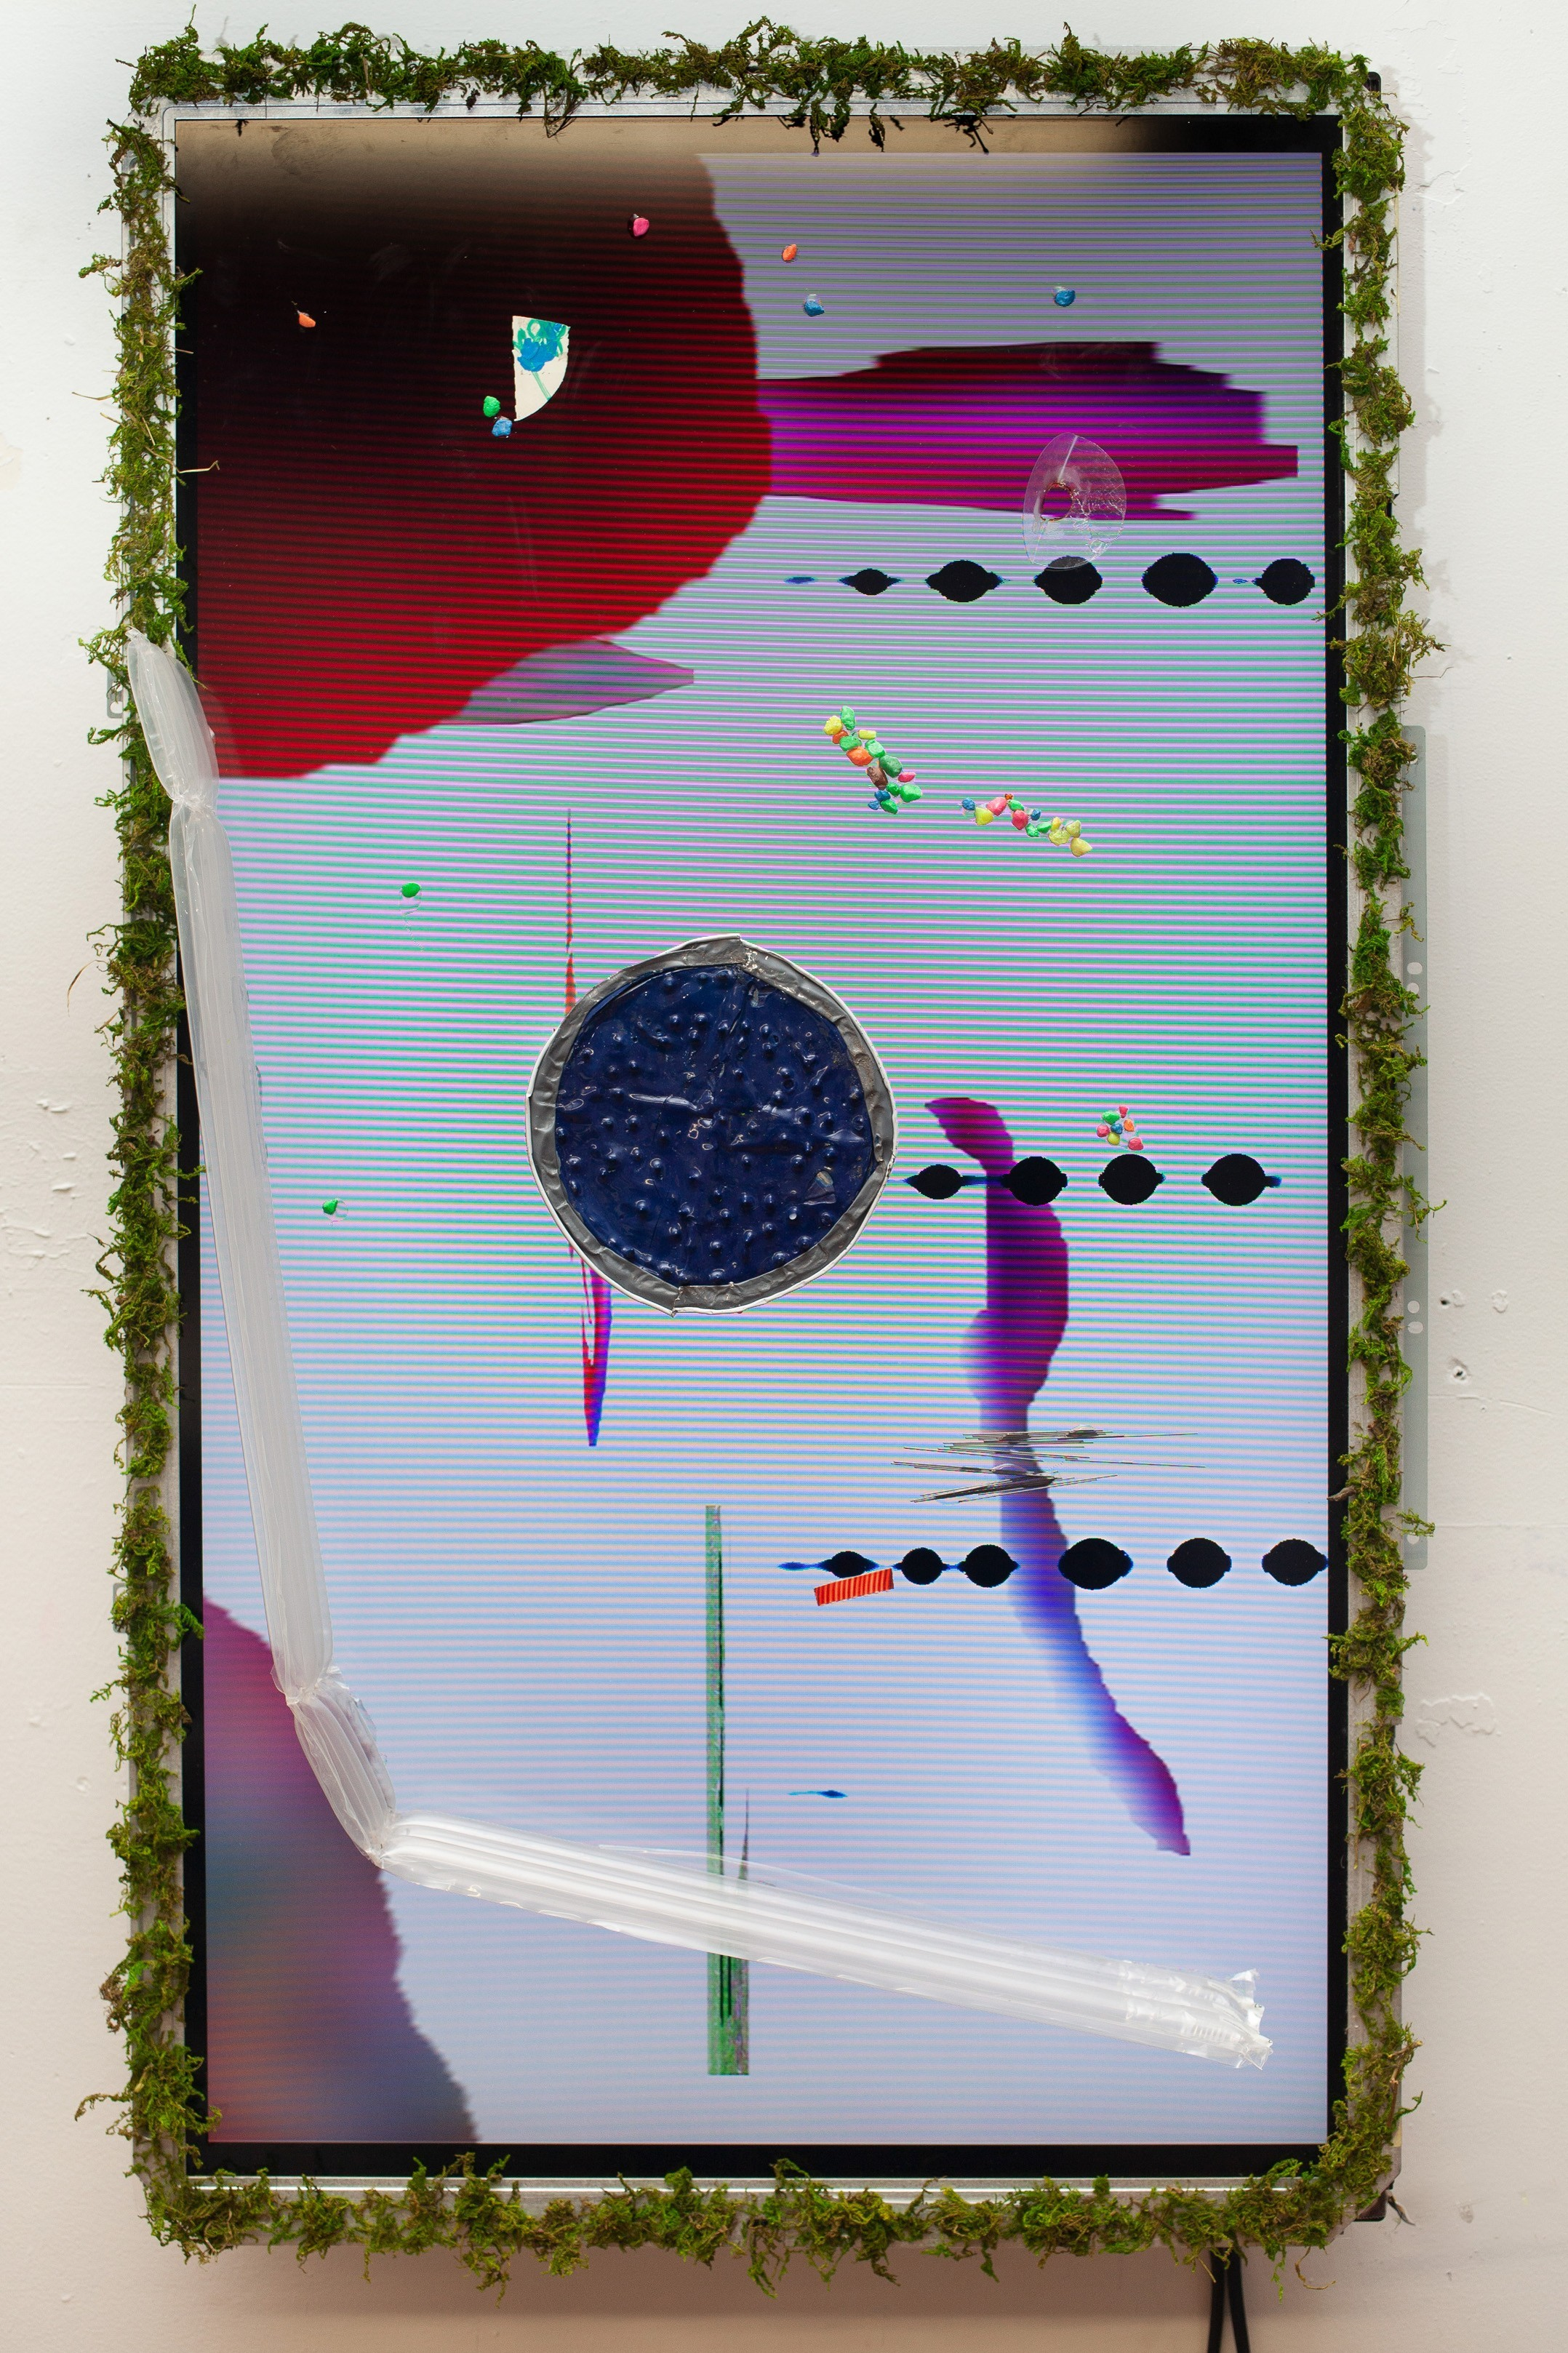 Videopainting 5 , 2019, LCD monitor with found objects, 18 x 30 IN.